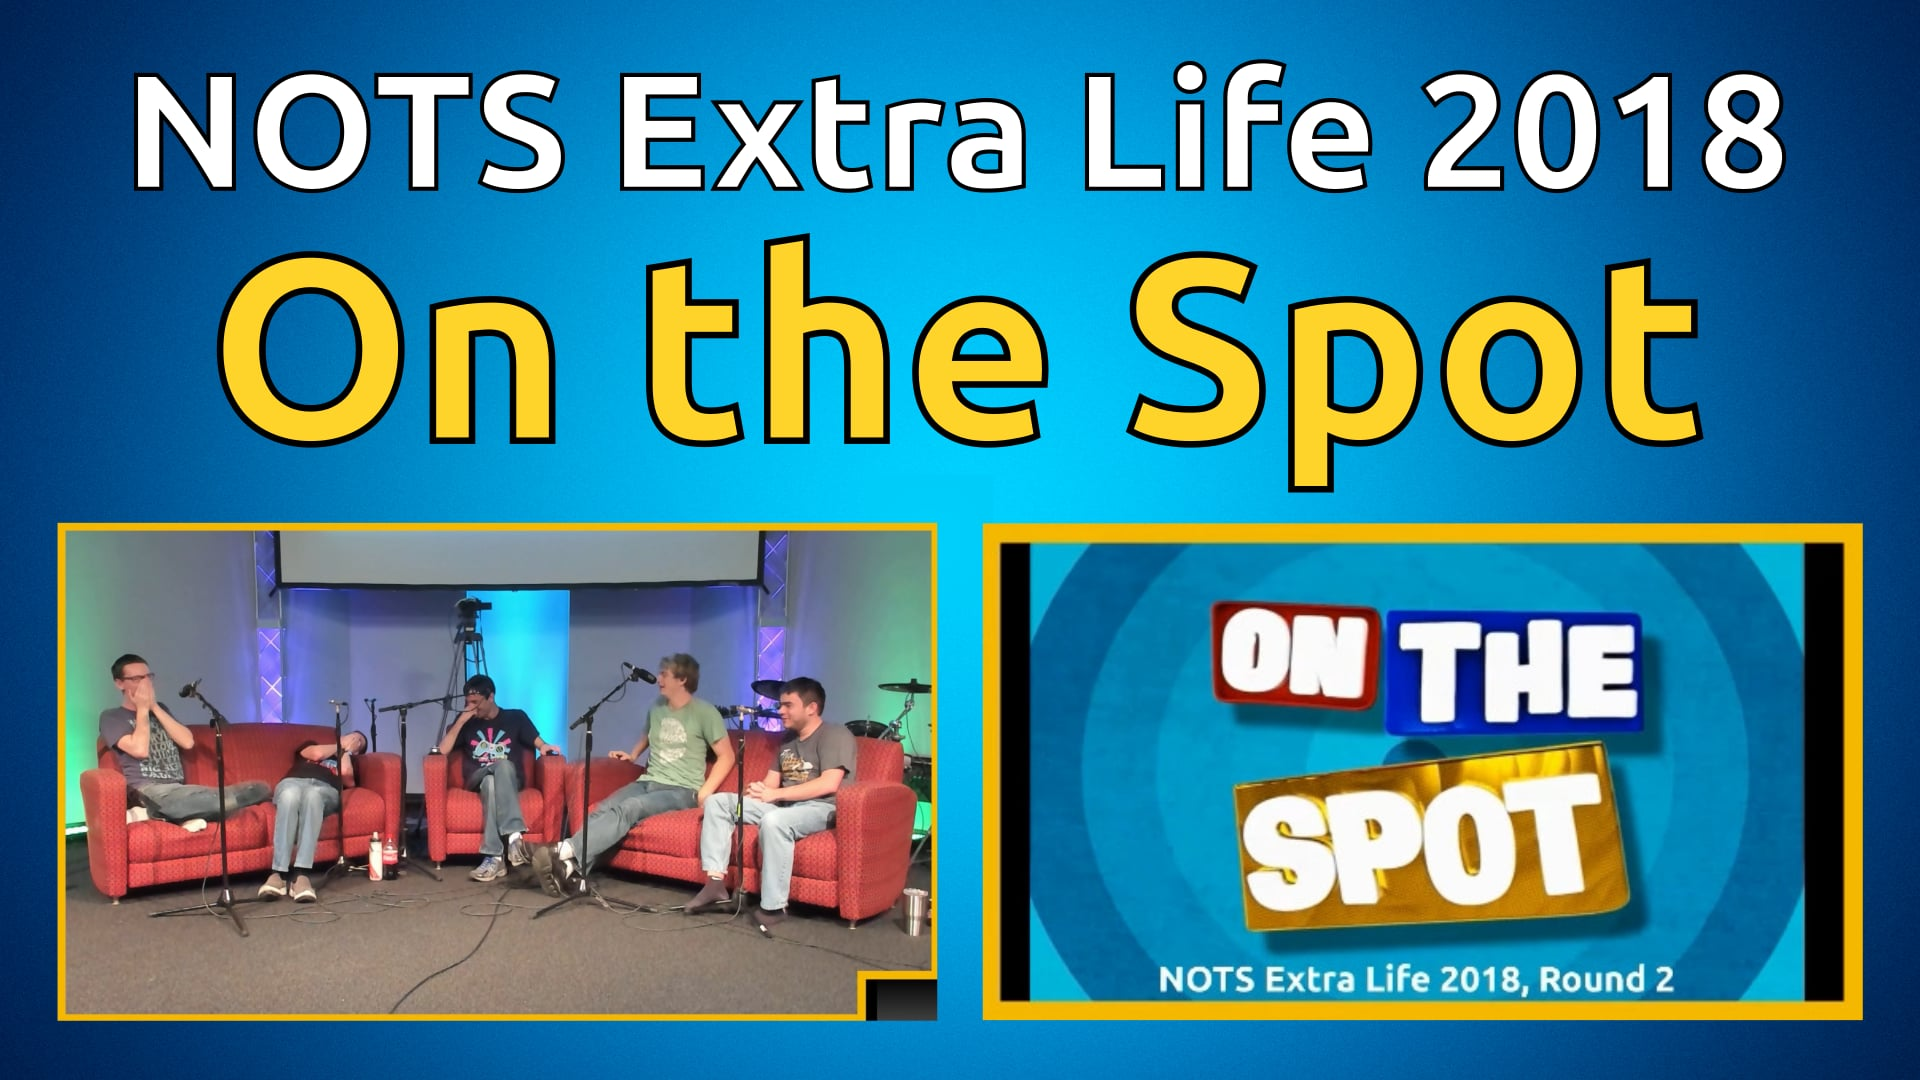 On the Spot, Round 2 - NOTS Extra Life 2018